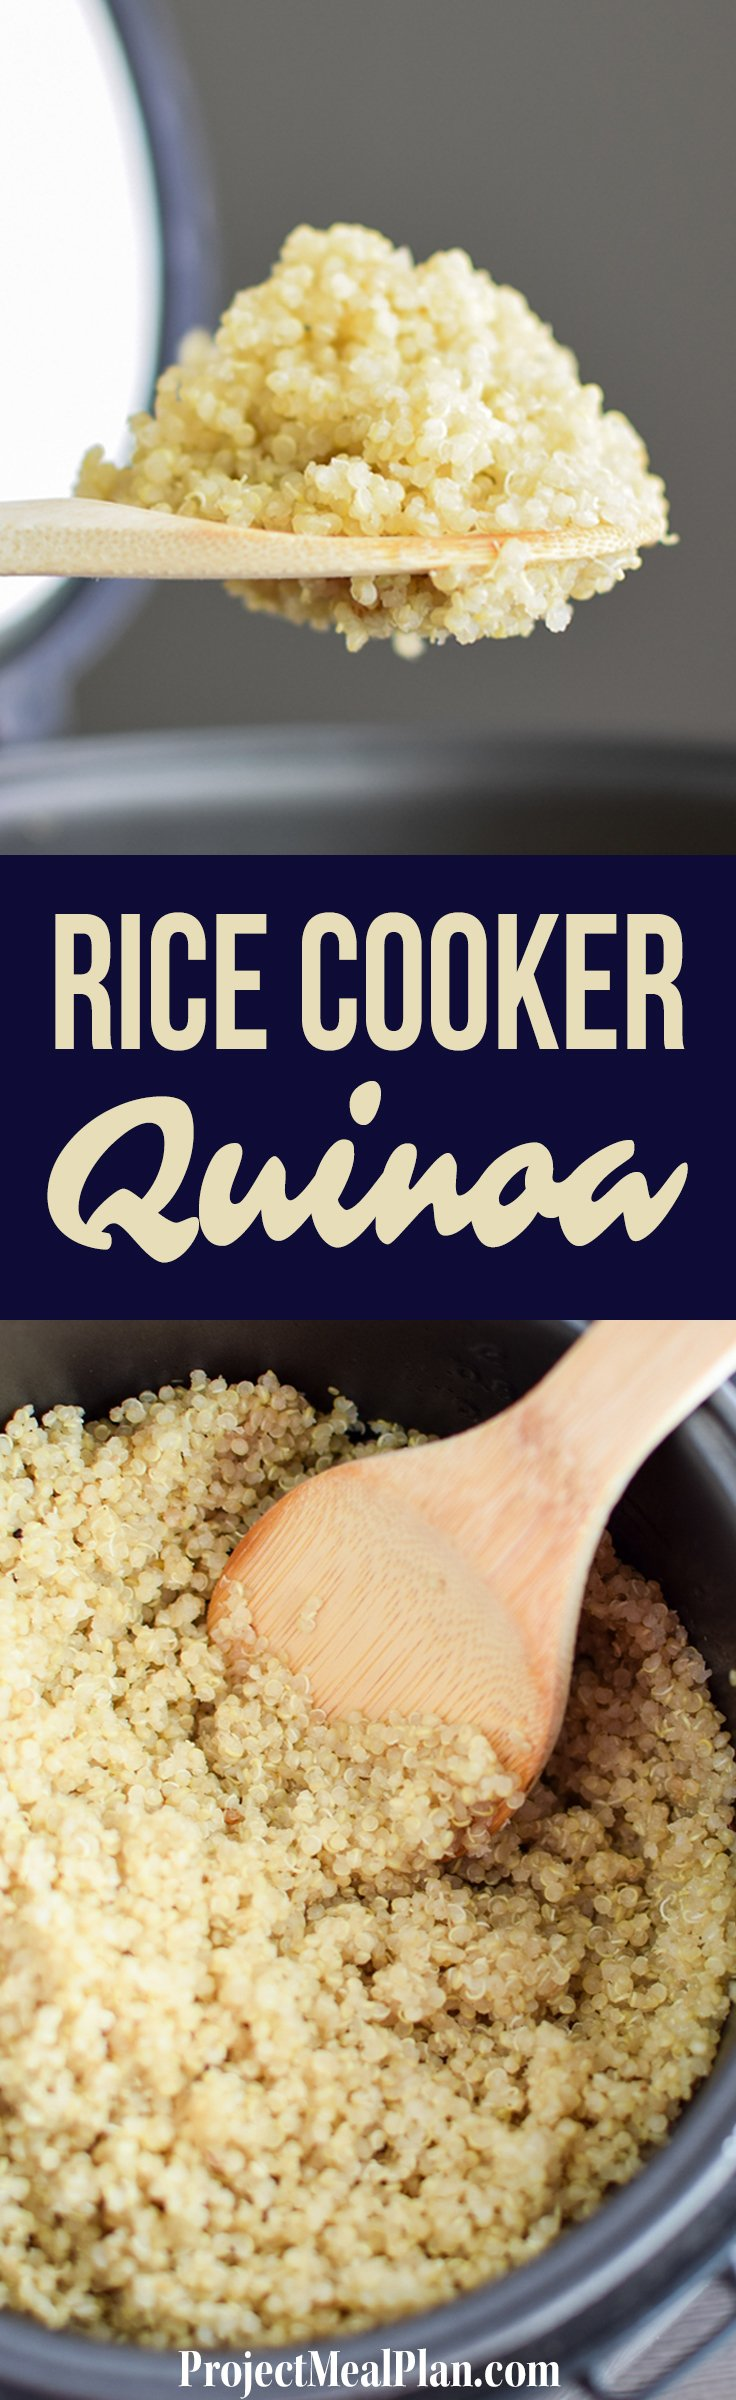 How to Cook Quinoa in the Rice Cooker - A simple explanation of how to make the EASIEST quinoa ever, in your rice cooker! - ProjectMealPlan.com